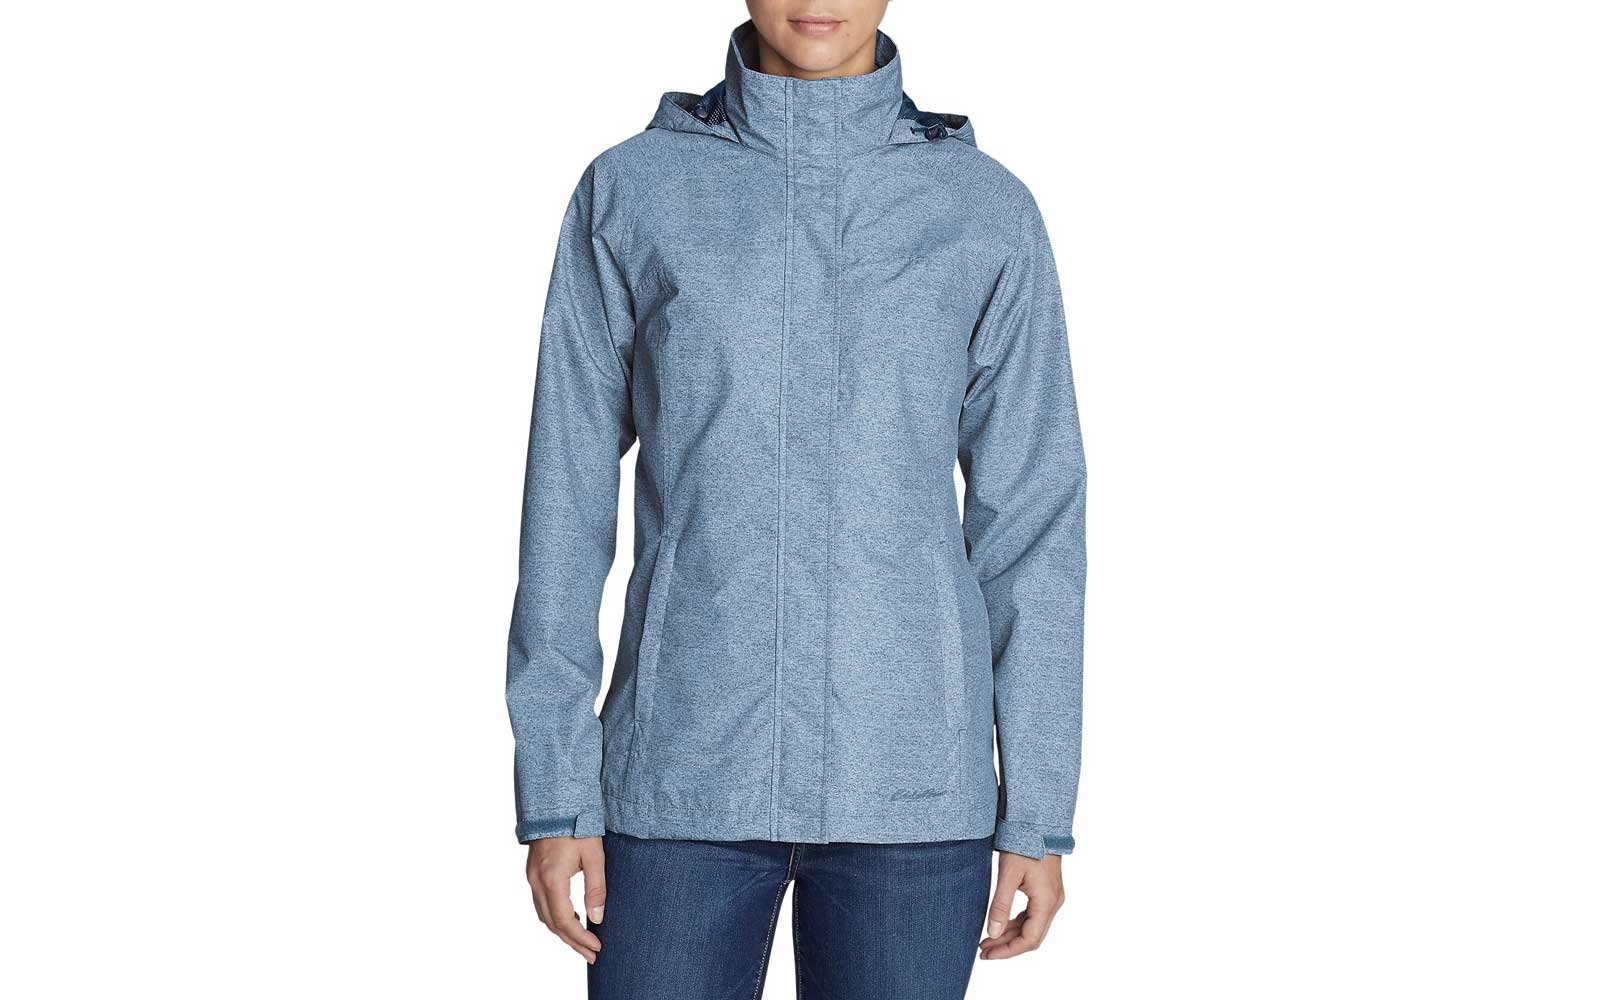 Packable Rain Jackets For Men And Women Travel Leisure